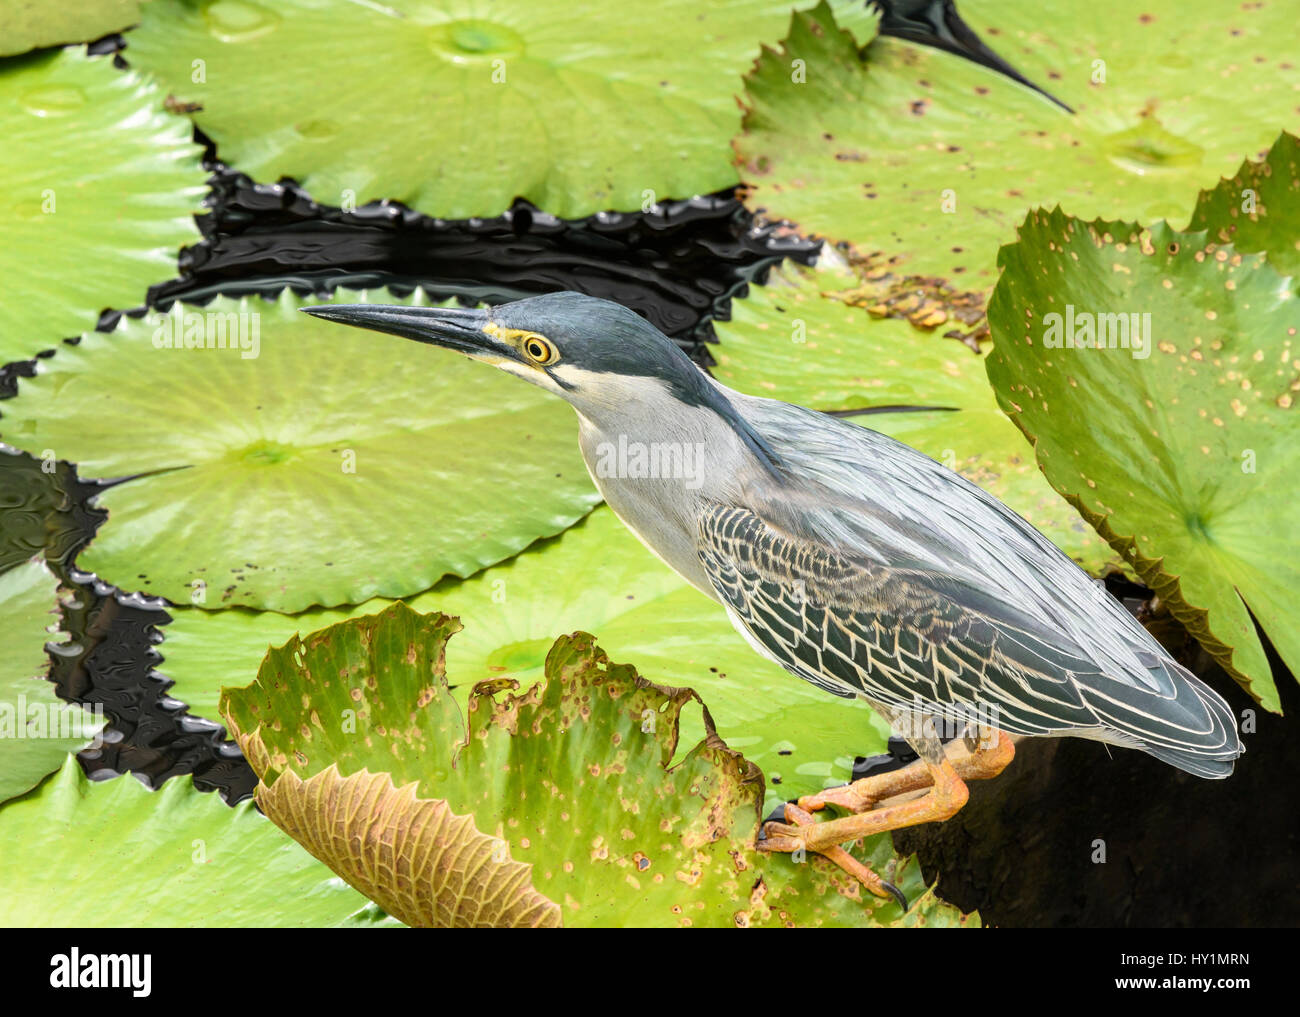 Striated heron walking on a pond of water lilies in Singapore - Stock Image